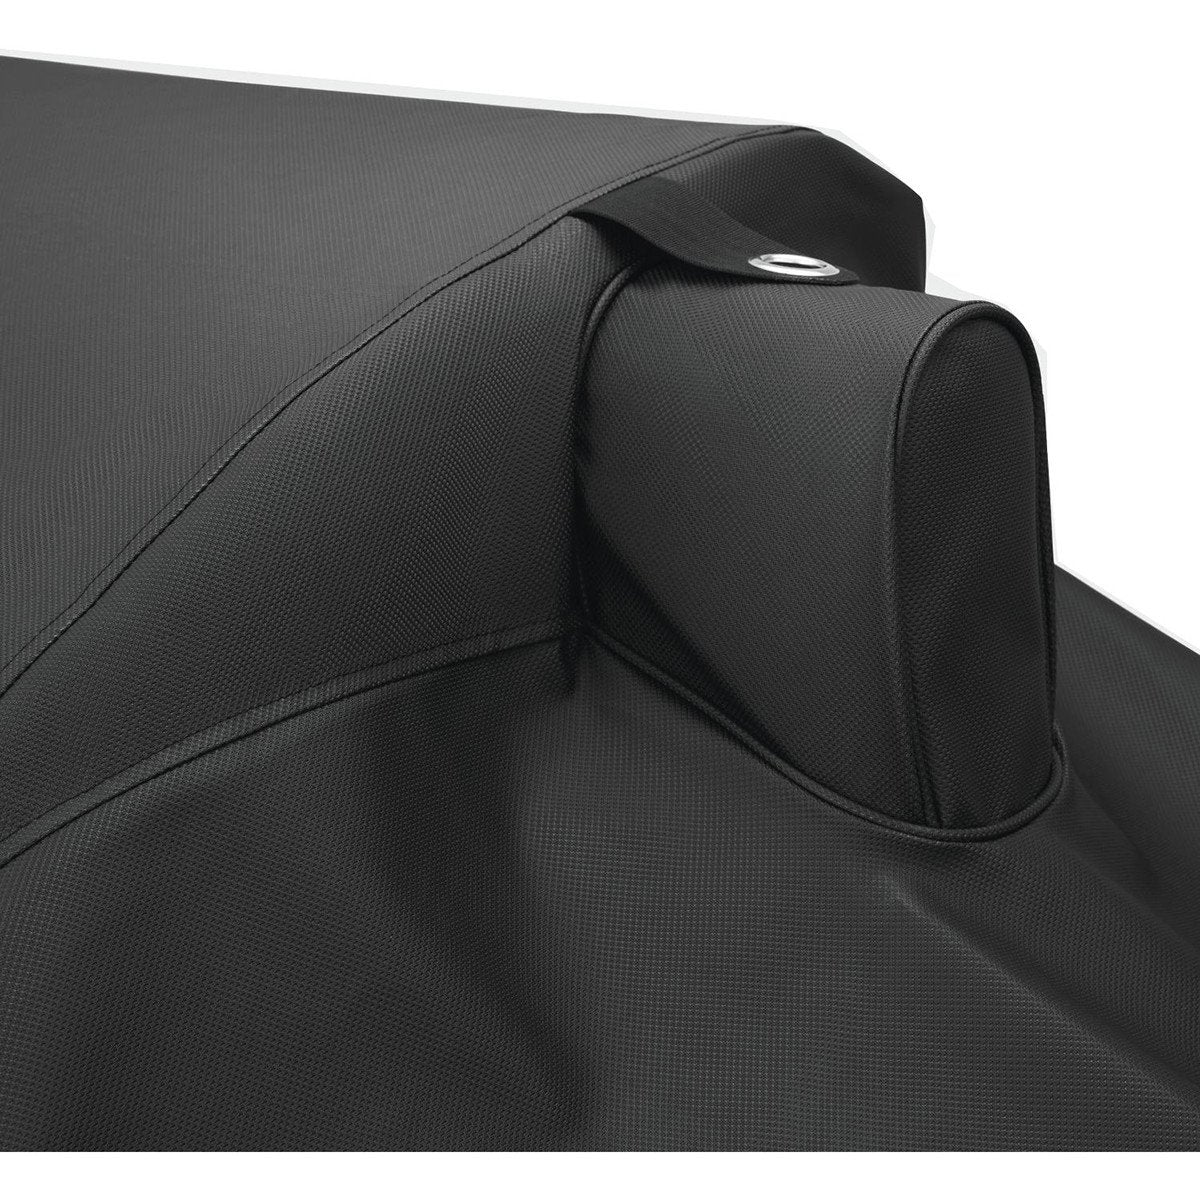 "DCS Grill Cover for 48"" On-Cart"